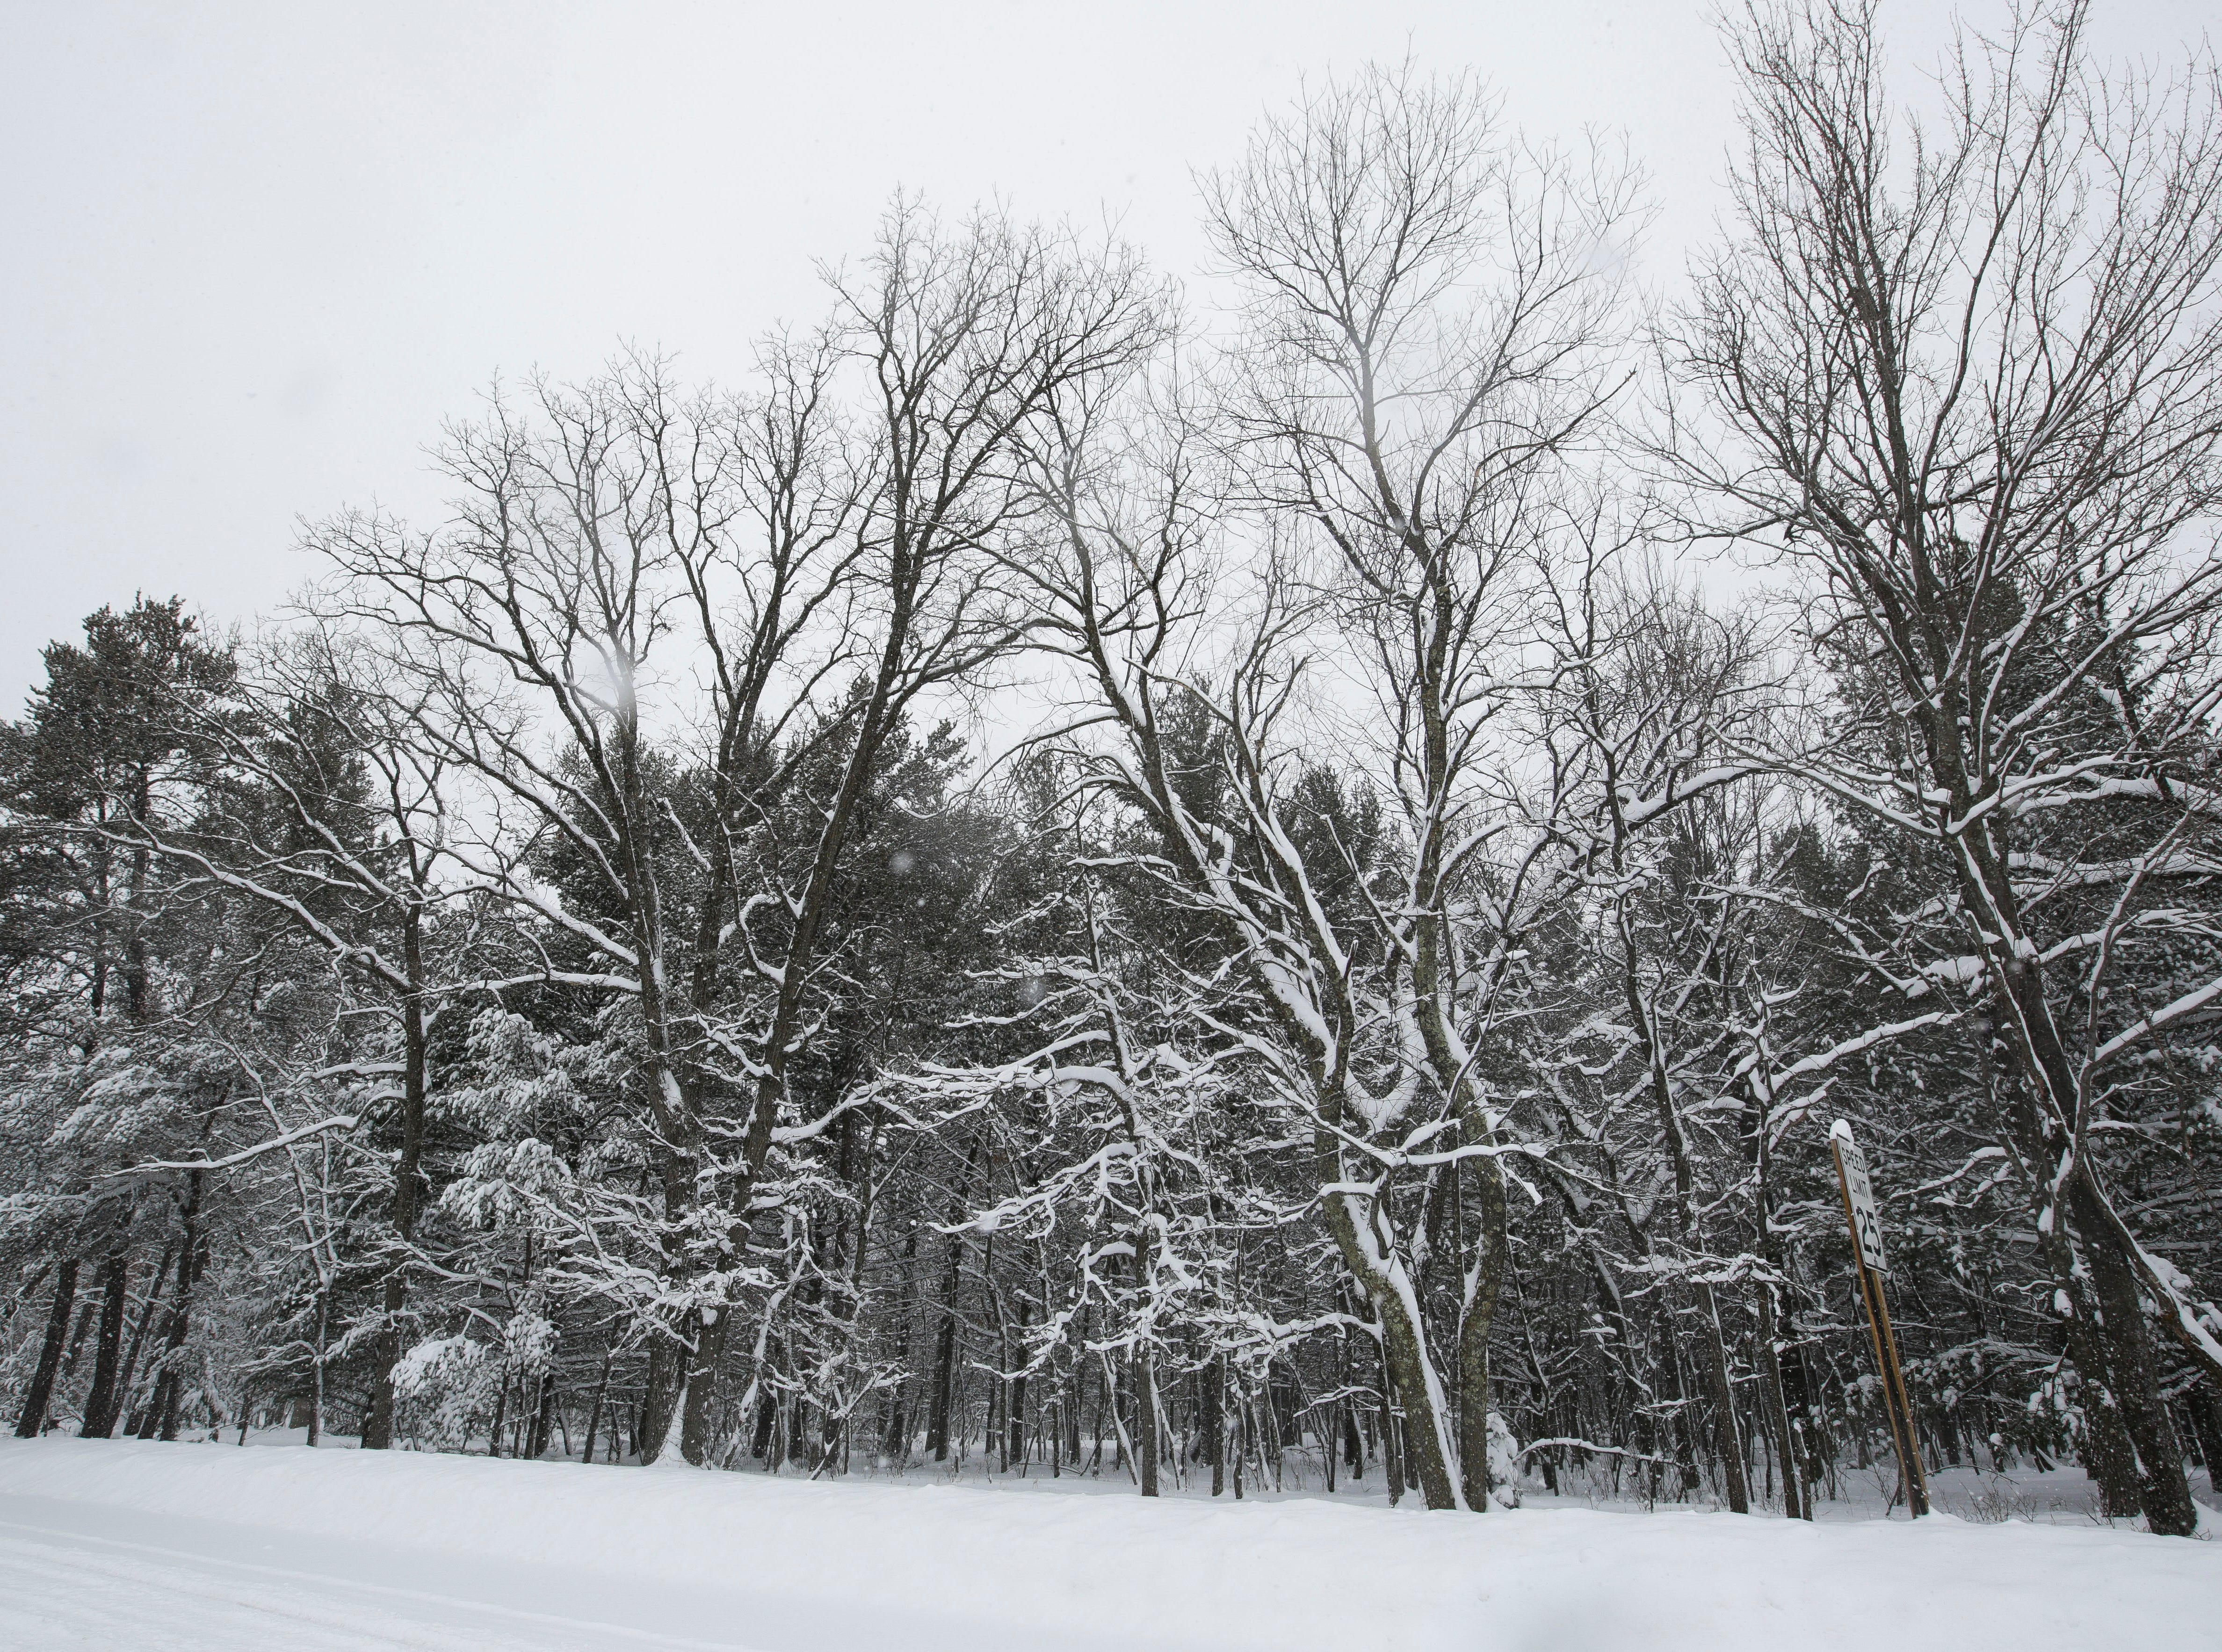 Snow gathers on trees along Golla Road on Tuesday, February 12, 2019, in Stevens Point, Wis. A winter storm is expected to drop 8-11 inches of snow in central Wisconsin before clearing Tuesday night.